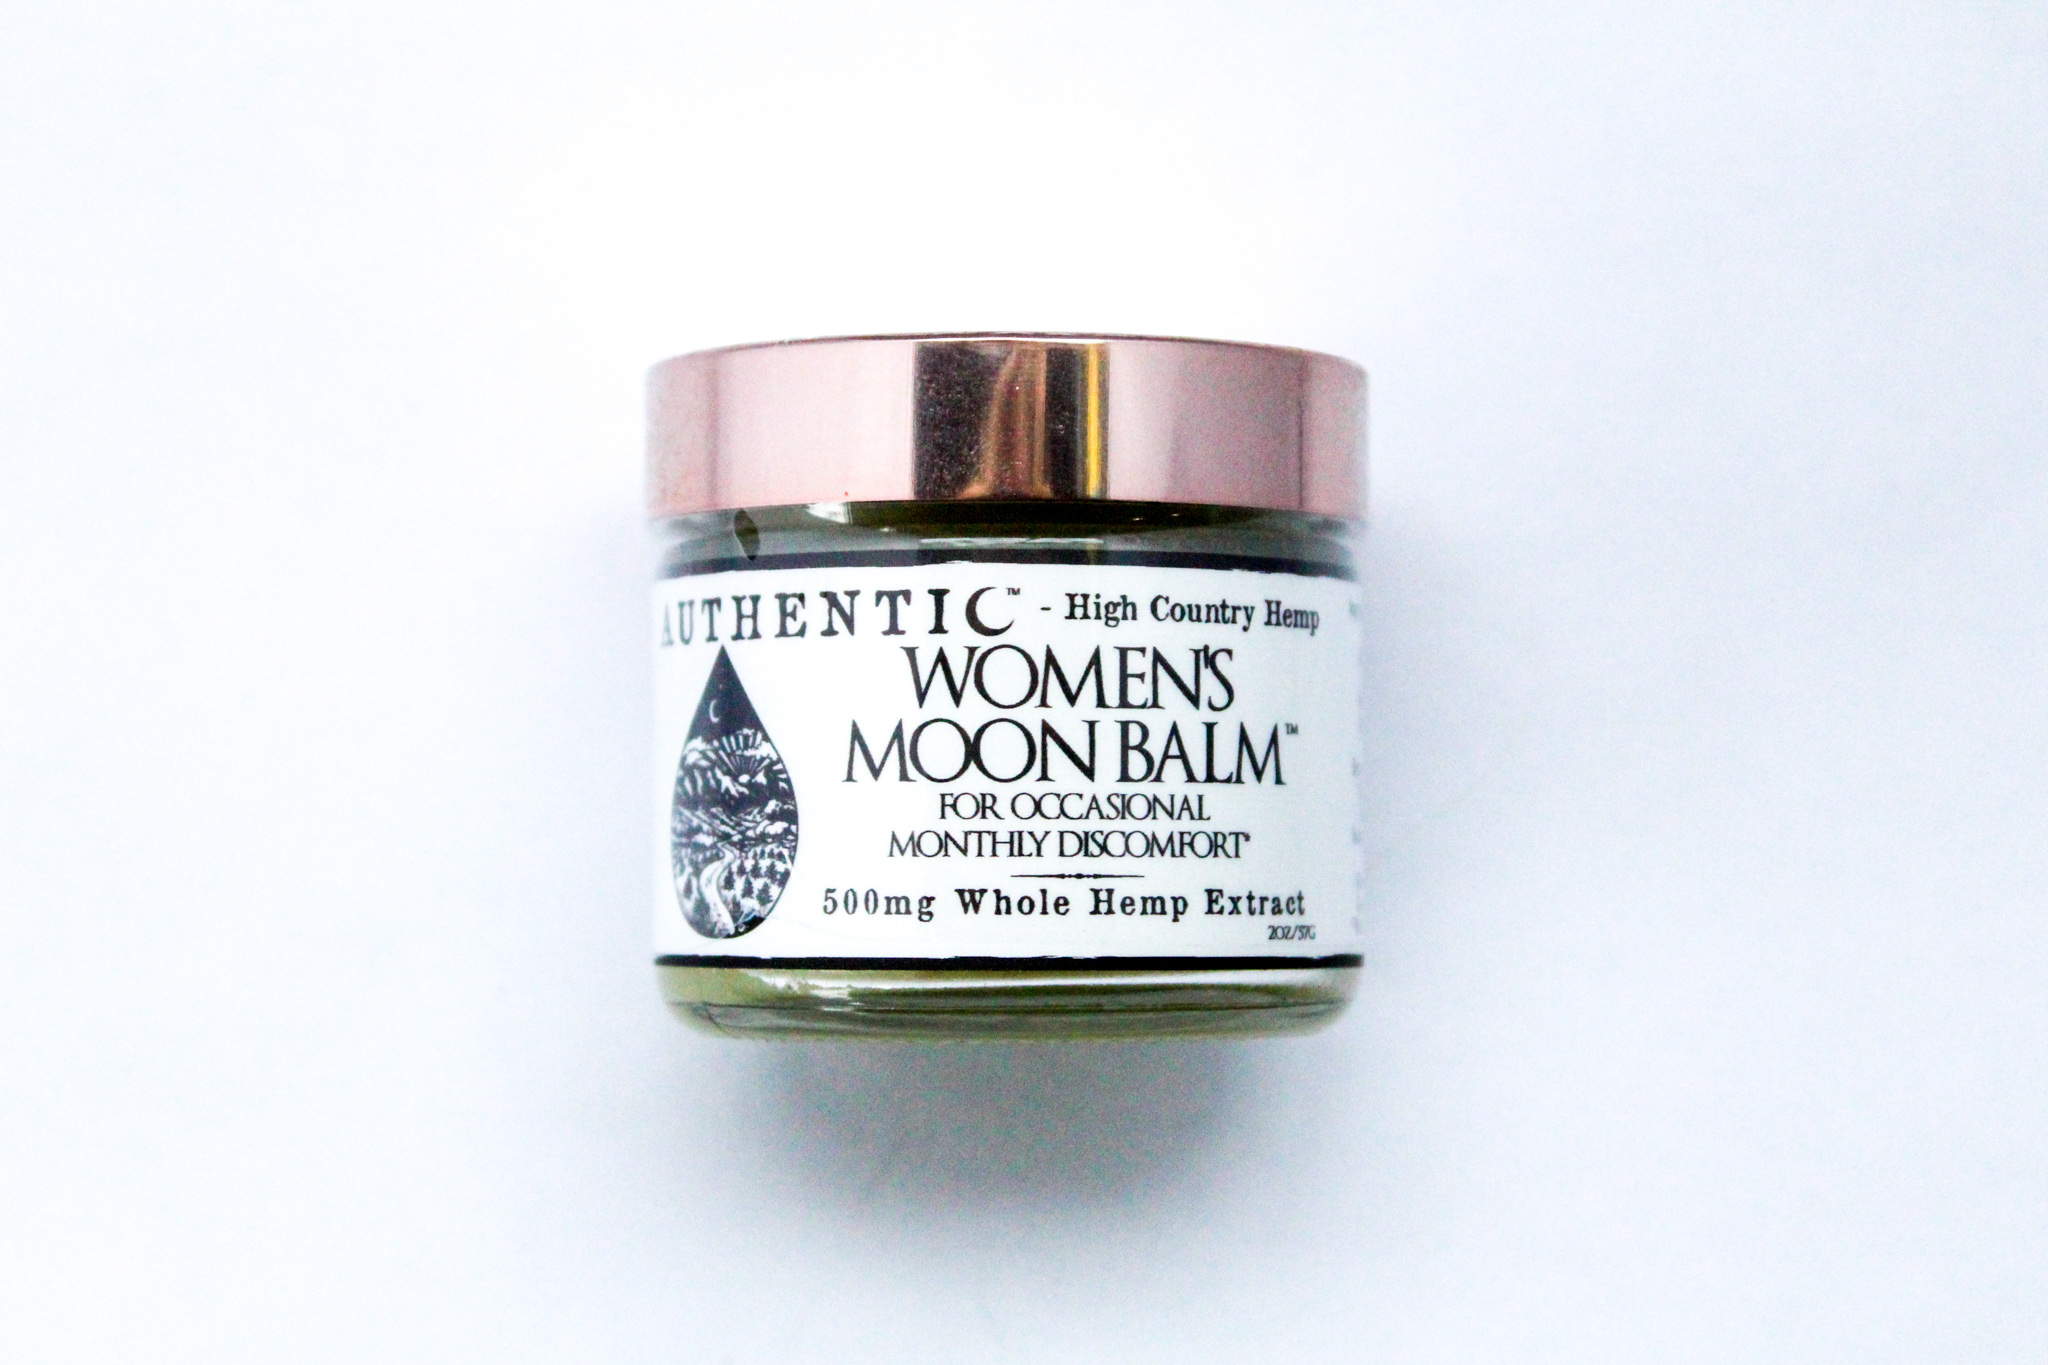 Image of Authentic – Women's Moon Balm